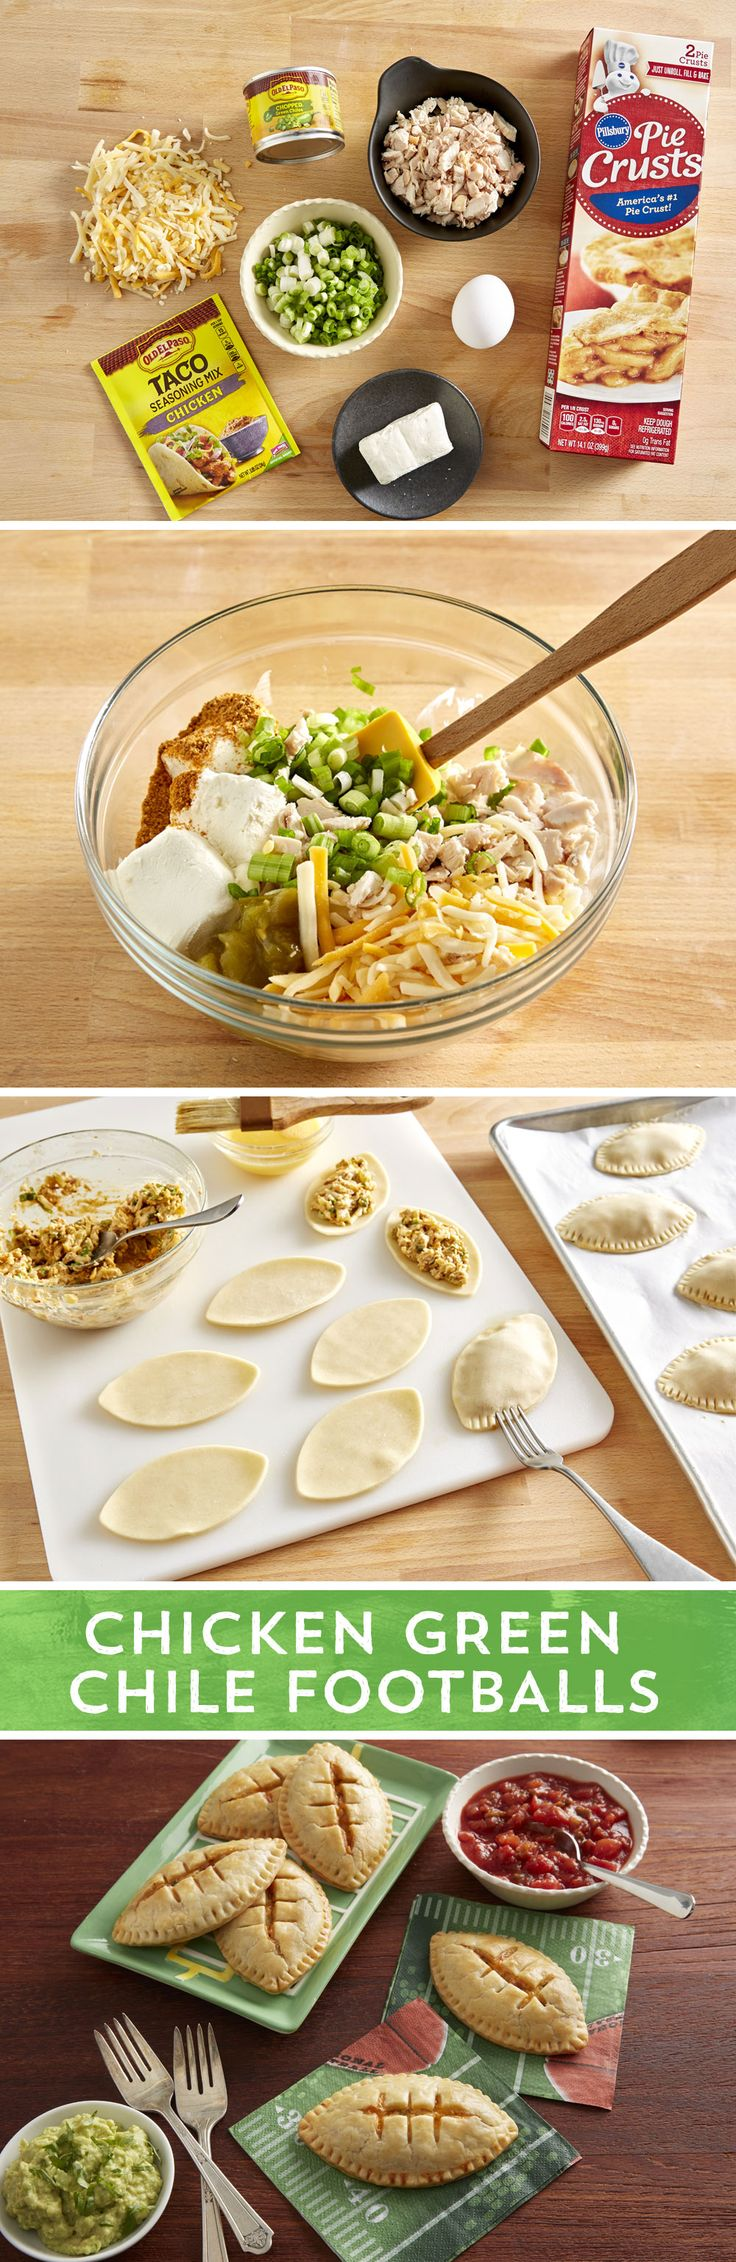 The perfect addition to any game day gathering; these empanadas are a cinch to make. Rotisserie chicken mixed with green onions, cheese, Old El Paso™ chopped green chiles, cream cheese, and Old El Paso™ chicken taco seasoning makes the perfect filling for these easy empanadas using Pillsbury™ refrigerated pie crusts. Rivalries will be put on hold when these hit the table.